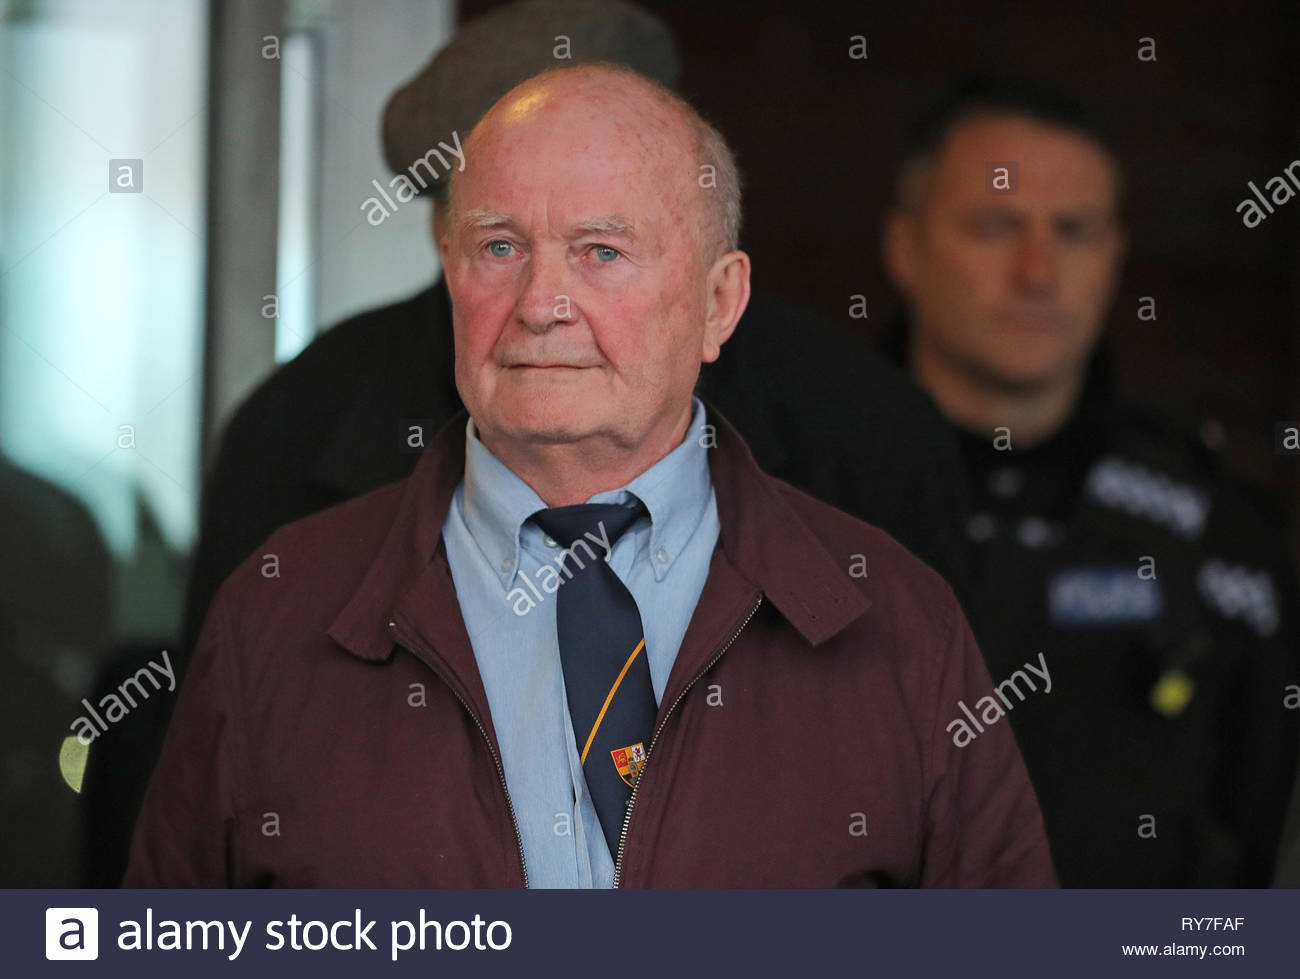 File photo dated 19/12/17 of Christopher Onslow, 71, one of seven former prison officers who worked at Medomsley Detention Centre in Consett, County Durham, who have been convicted at Teesside Crown Court of the historic physical abuse of teenage inmates in the 1970s and 1980s. - Stock Image